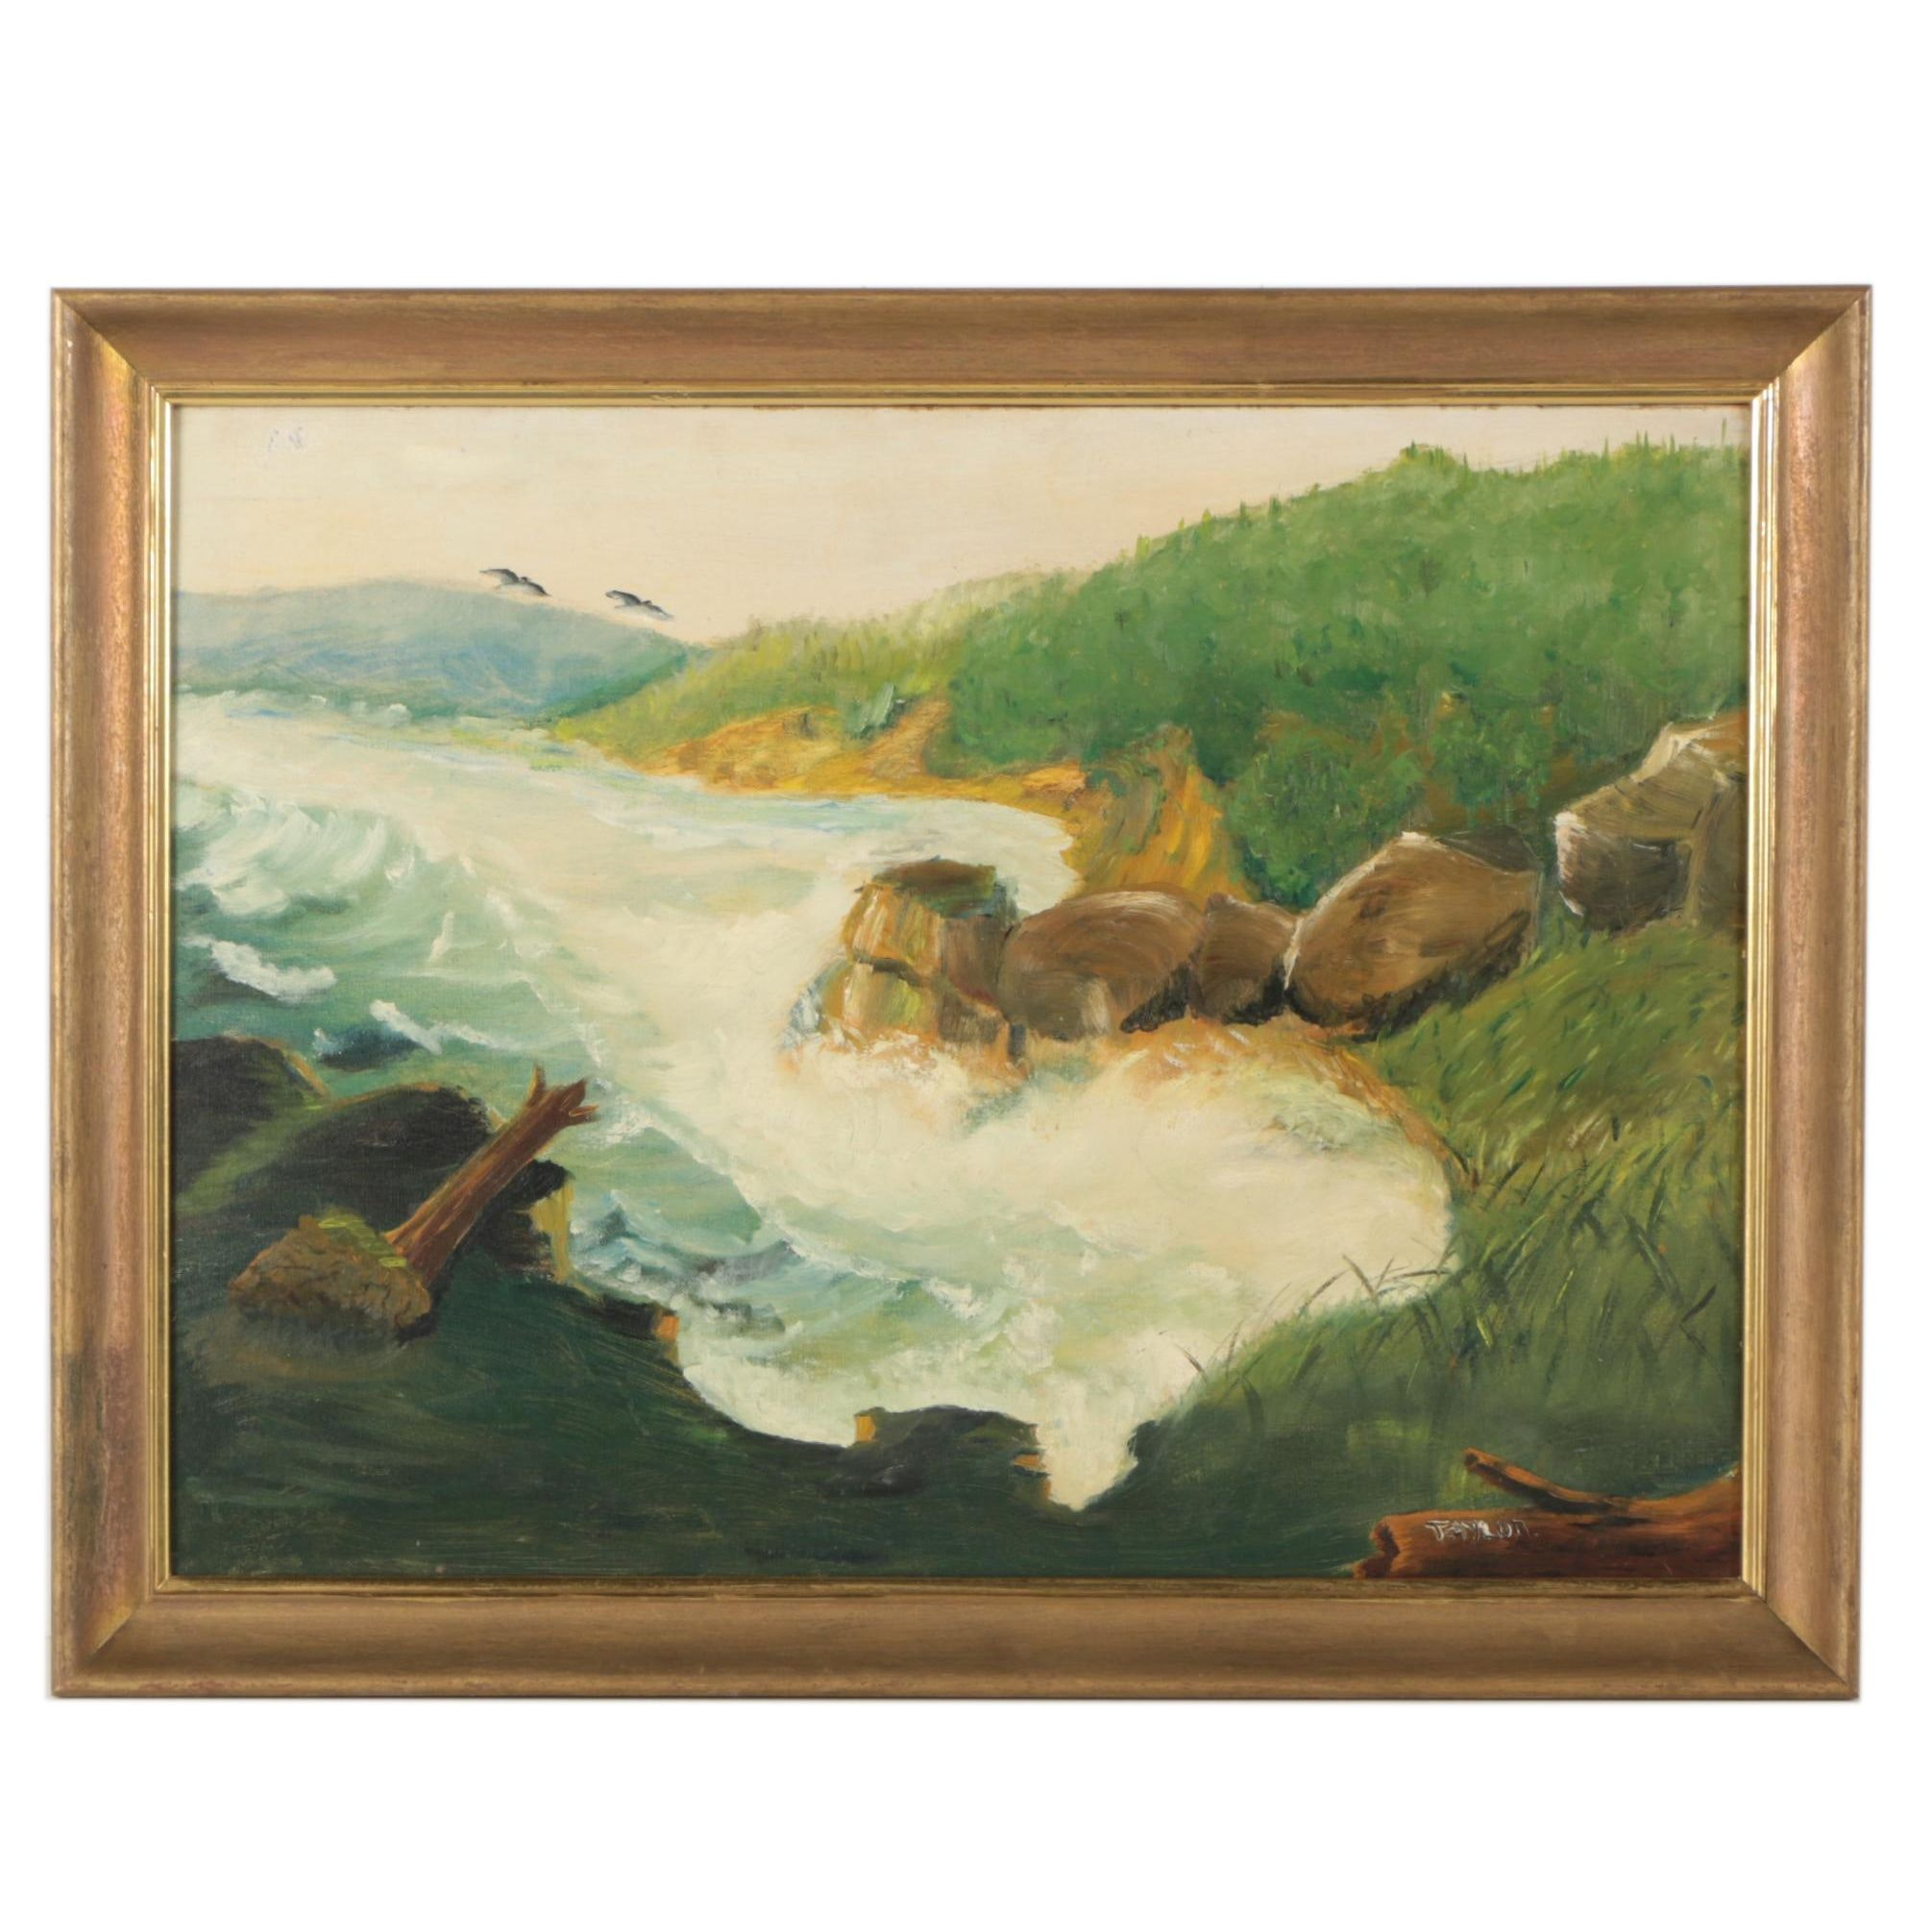 Taylor Oil Painting of a Shoreline